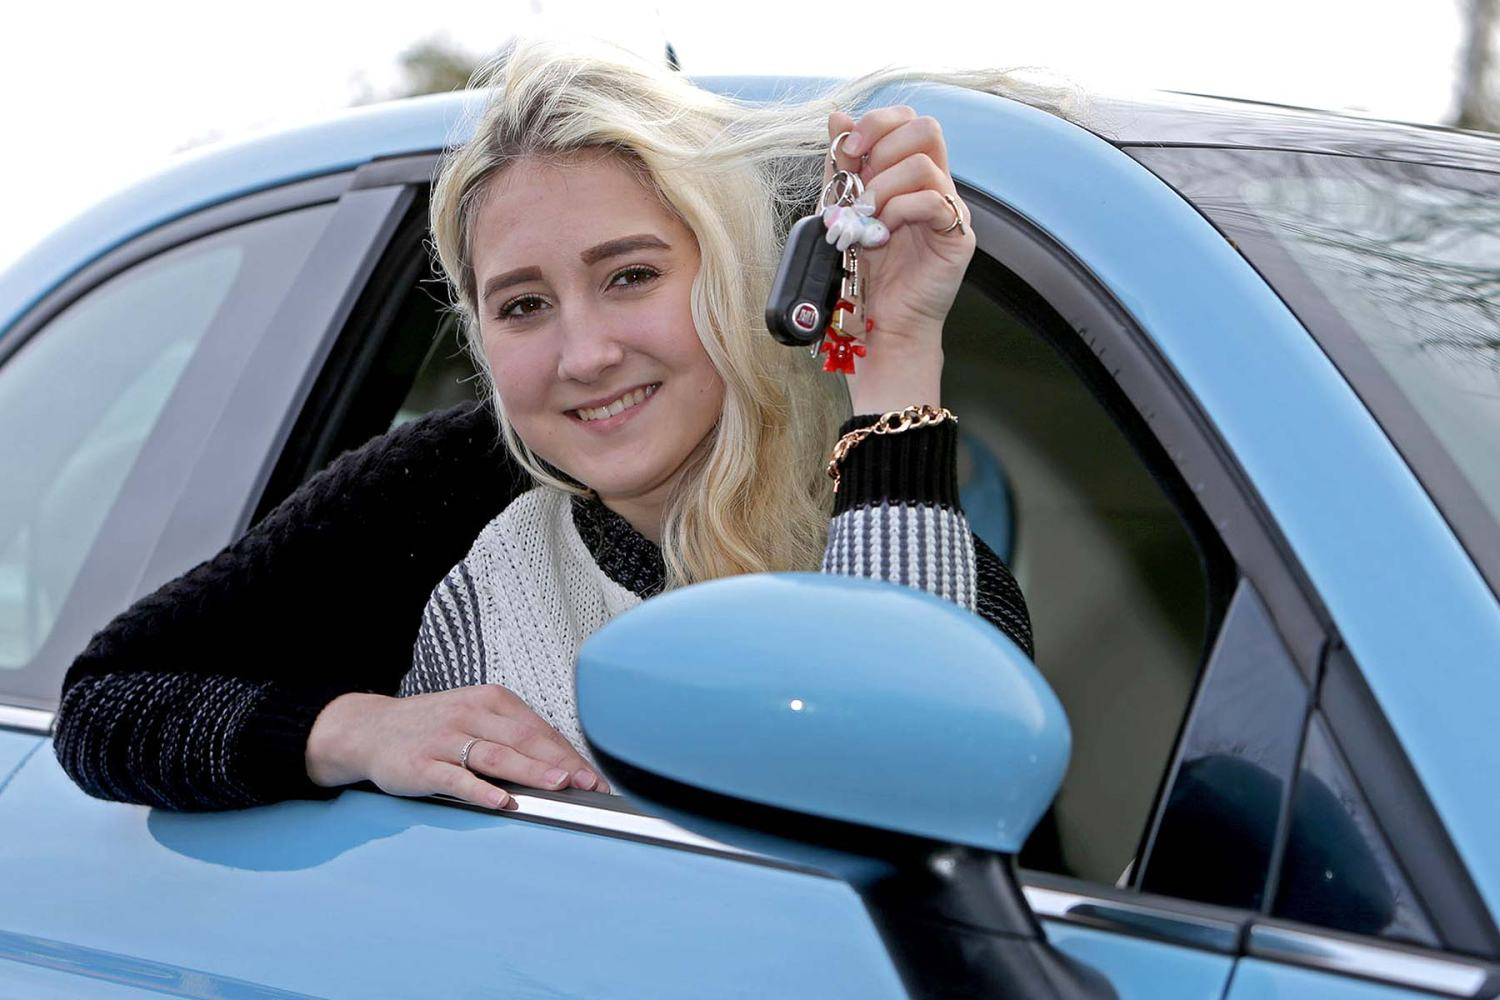 Young driver in her first car